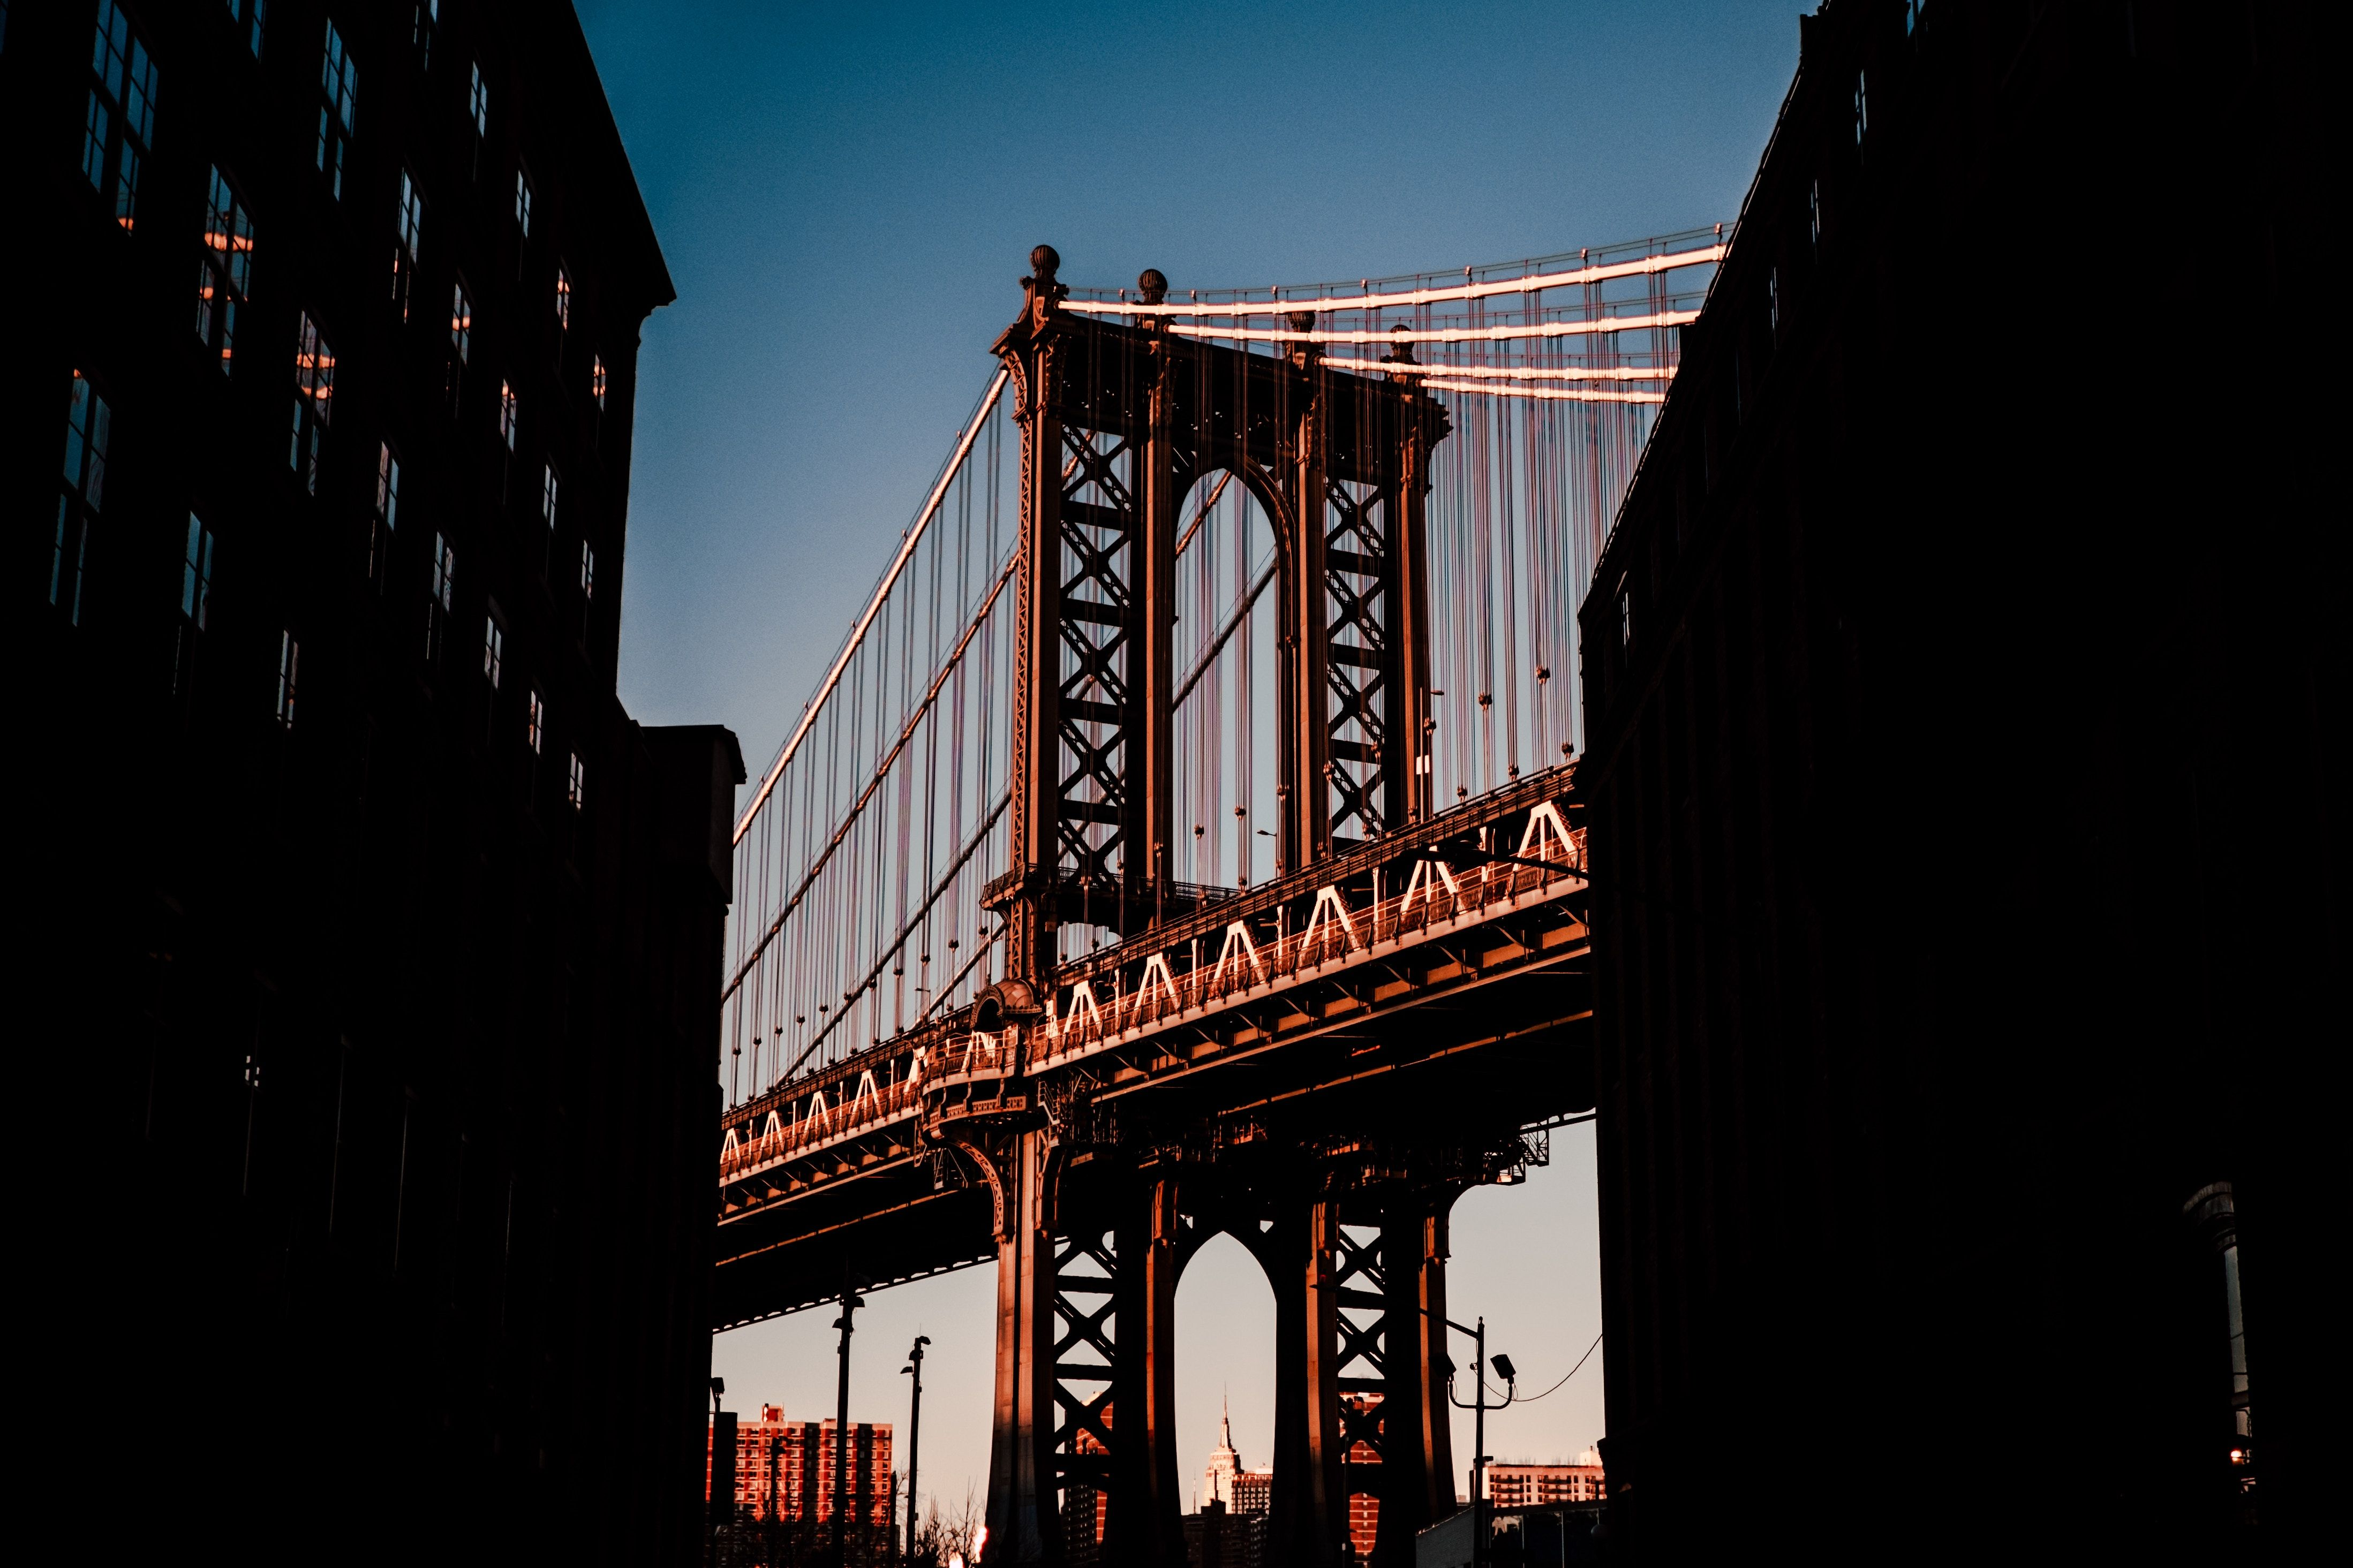 Photoville is located in Dumbo known for its Instagram moments